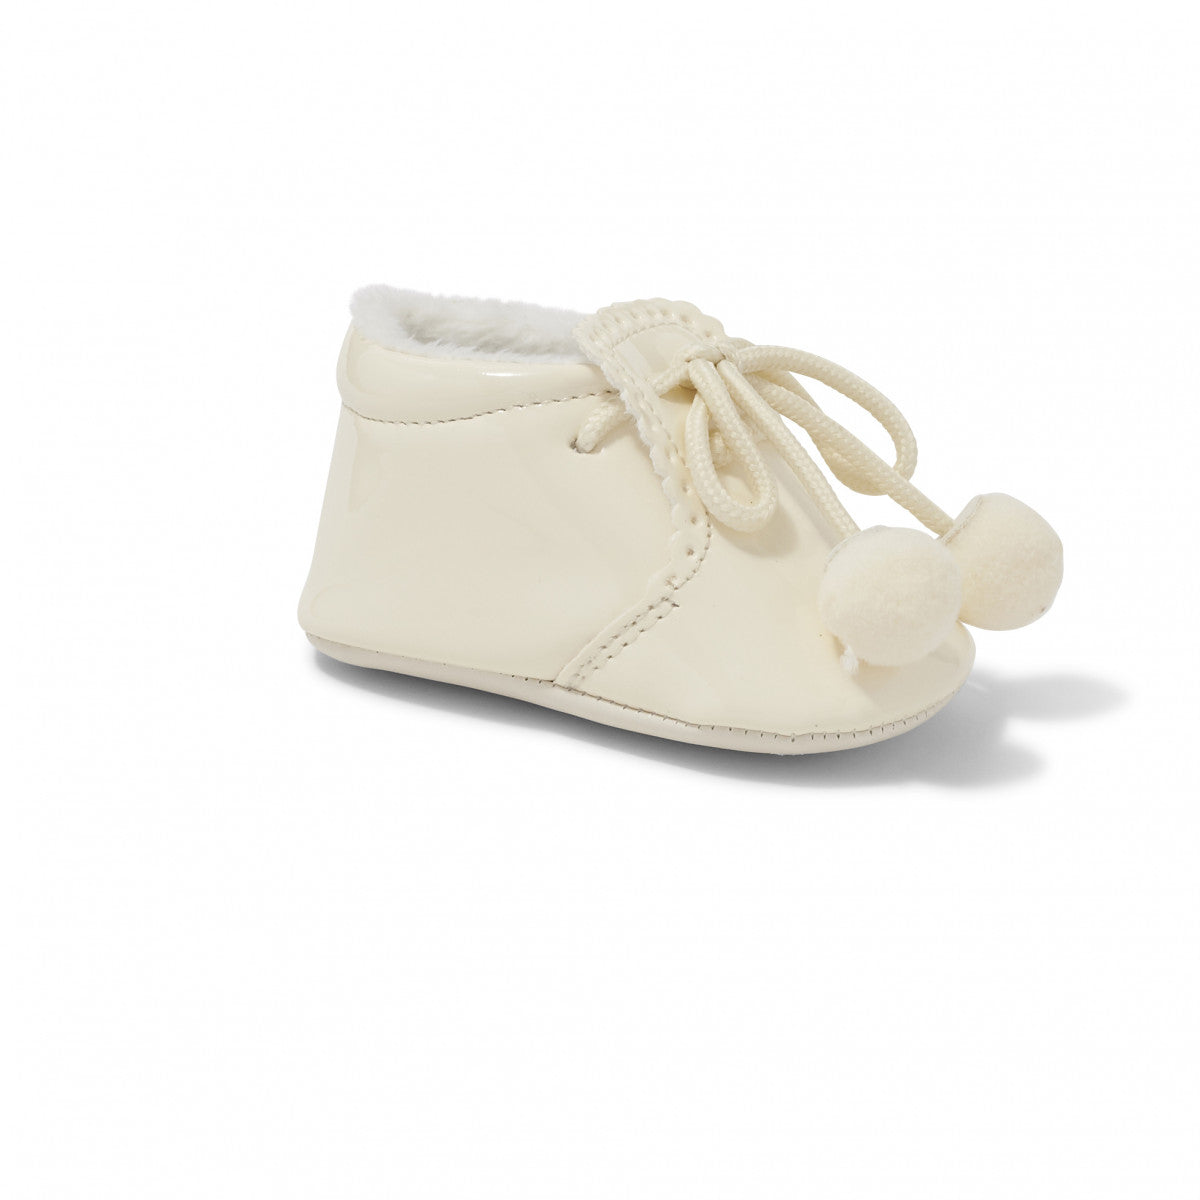 Joe Cream Pom Pom Pram Shoe